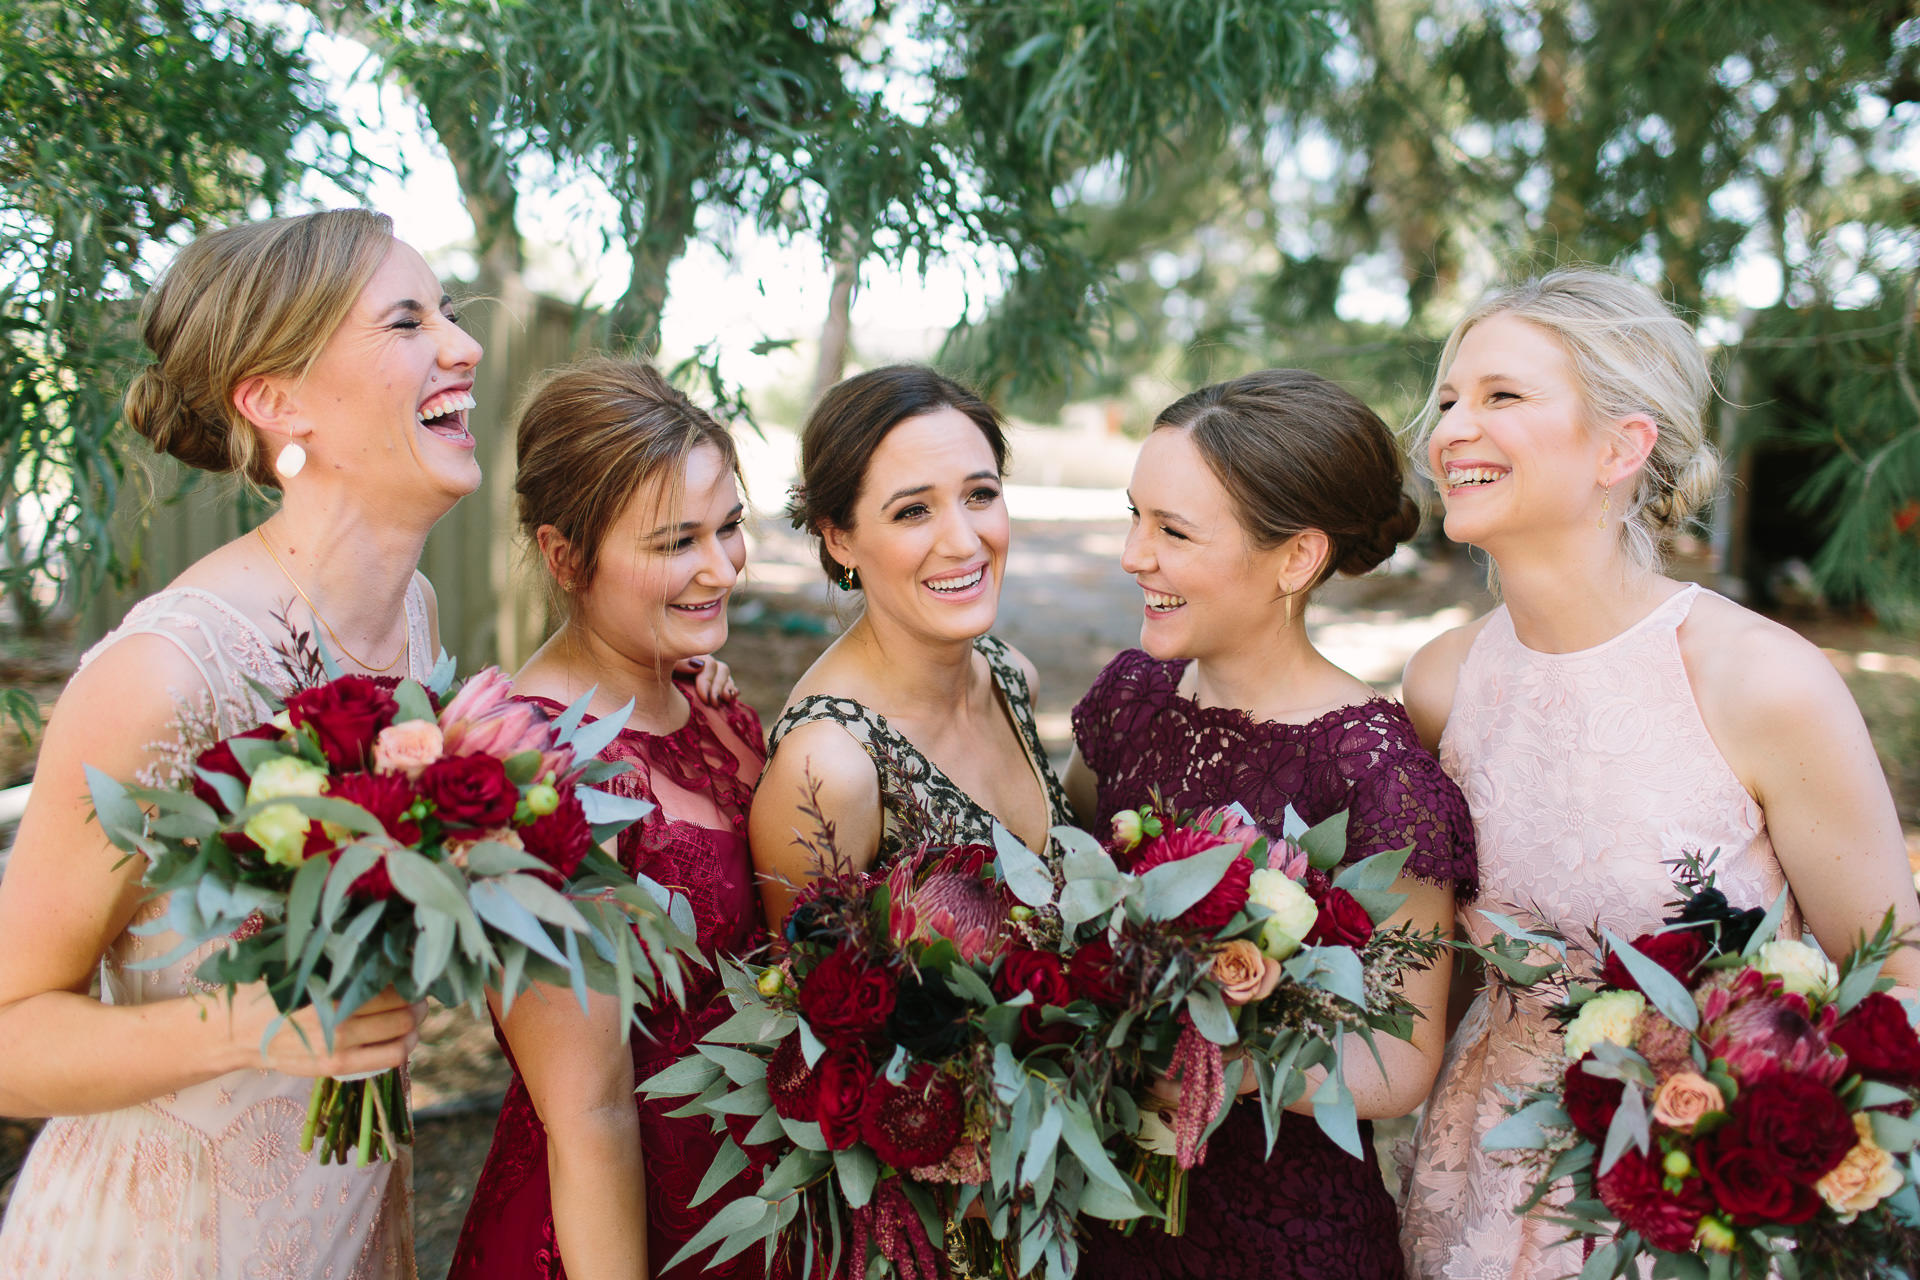 Bridesmaids laugh together with bouquets and mismatched dresses